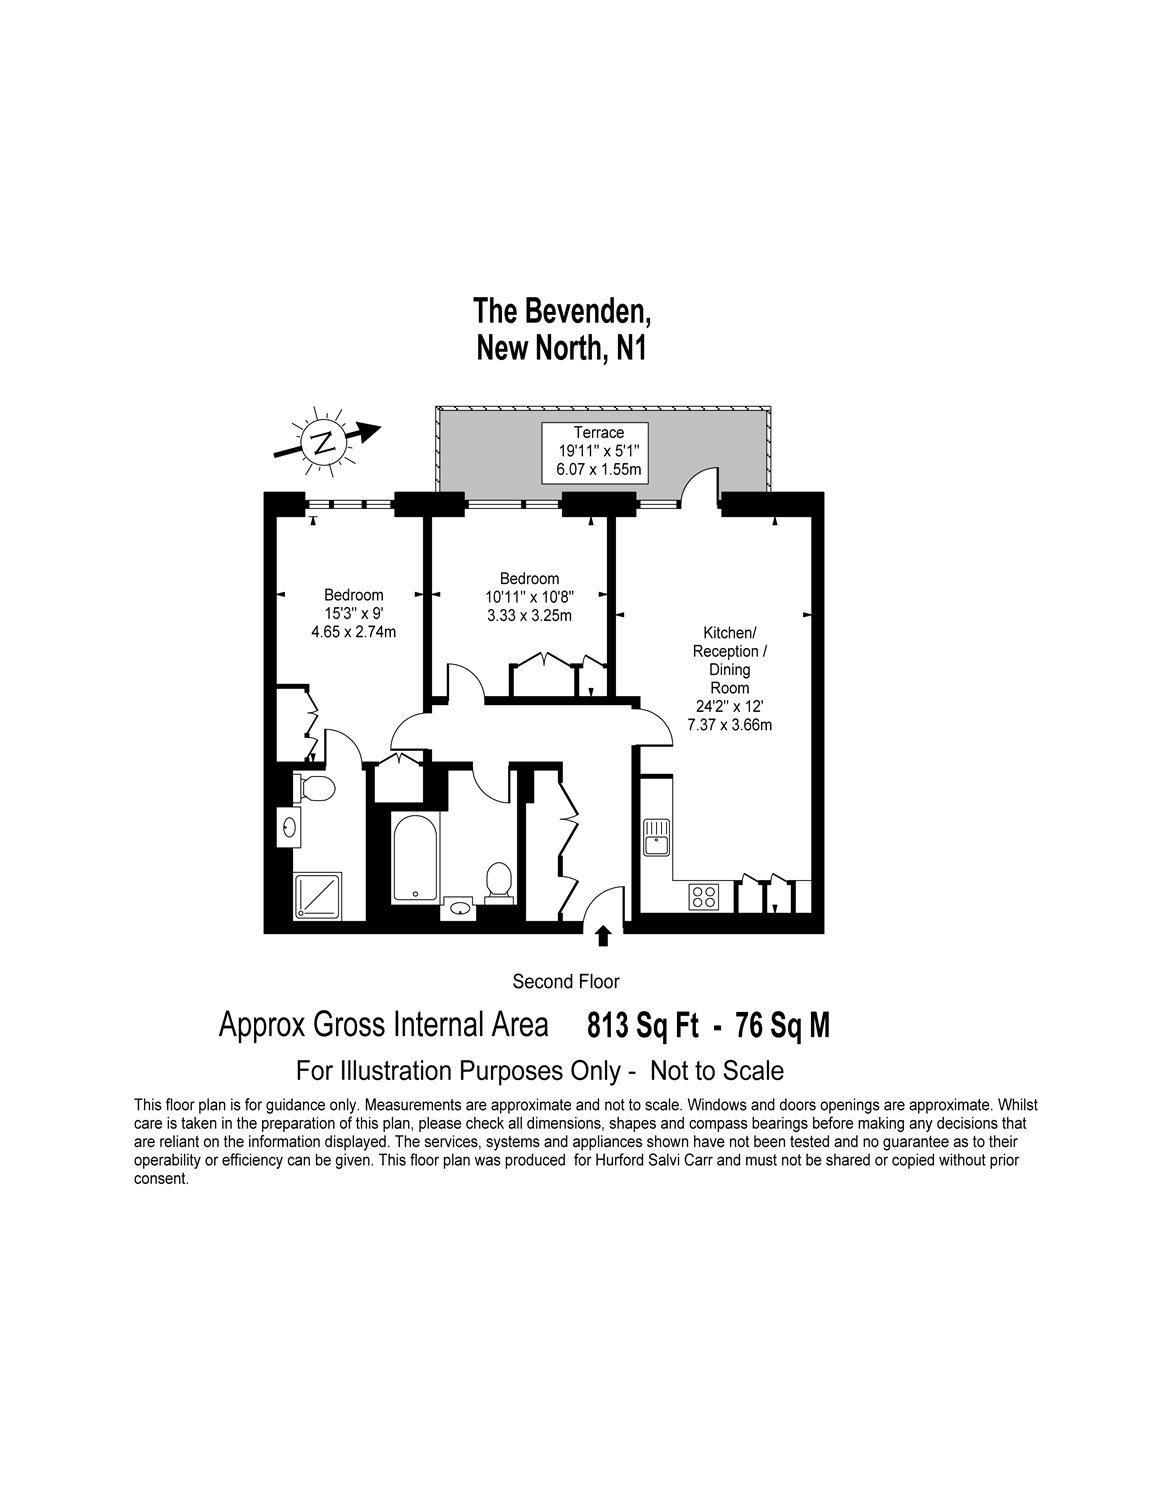 New North Road, Shoreditch, London, N1 floorplan